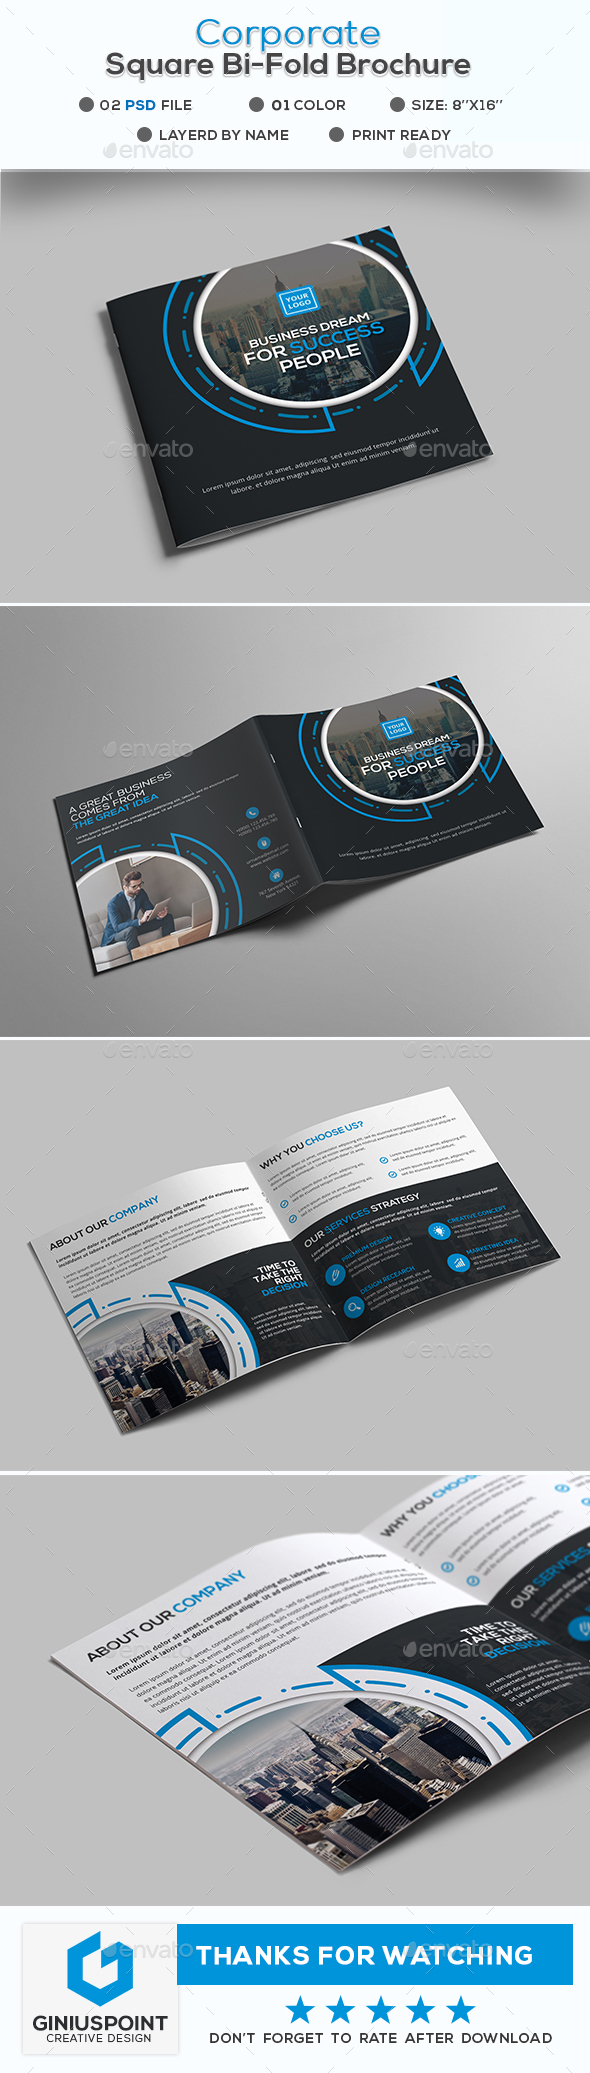 Corporate Square Bi-Fold Brochure - Corporate Brochures